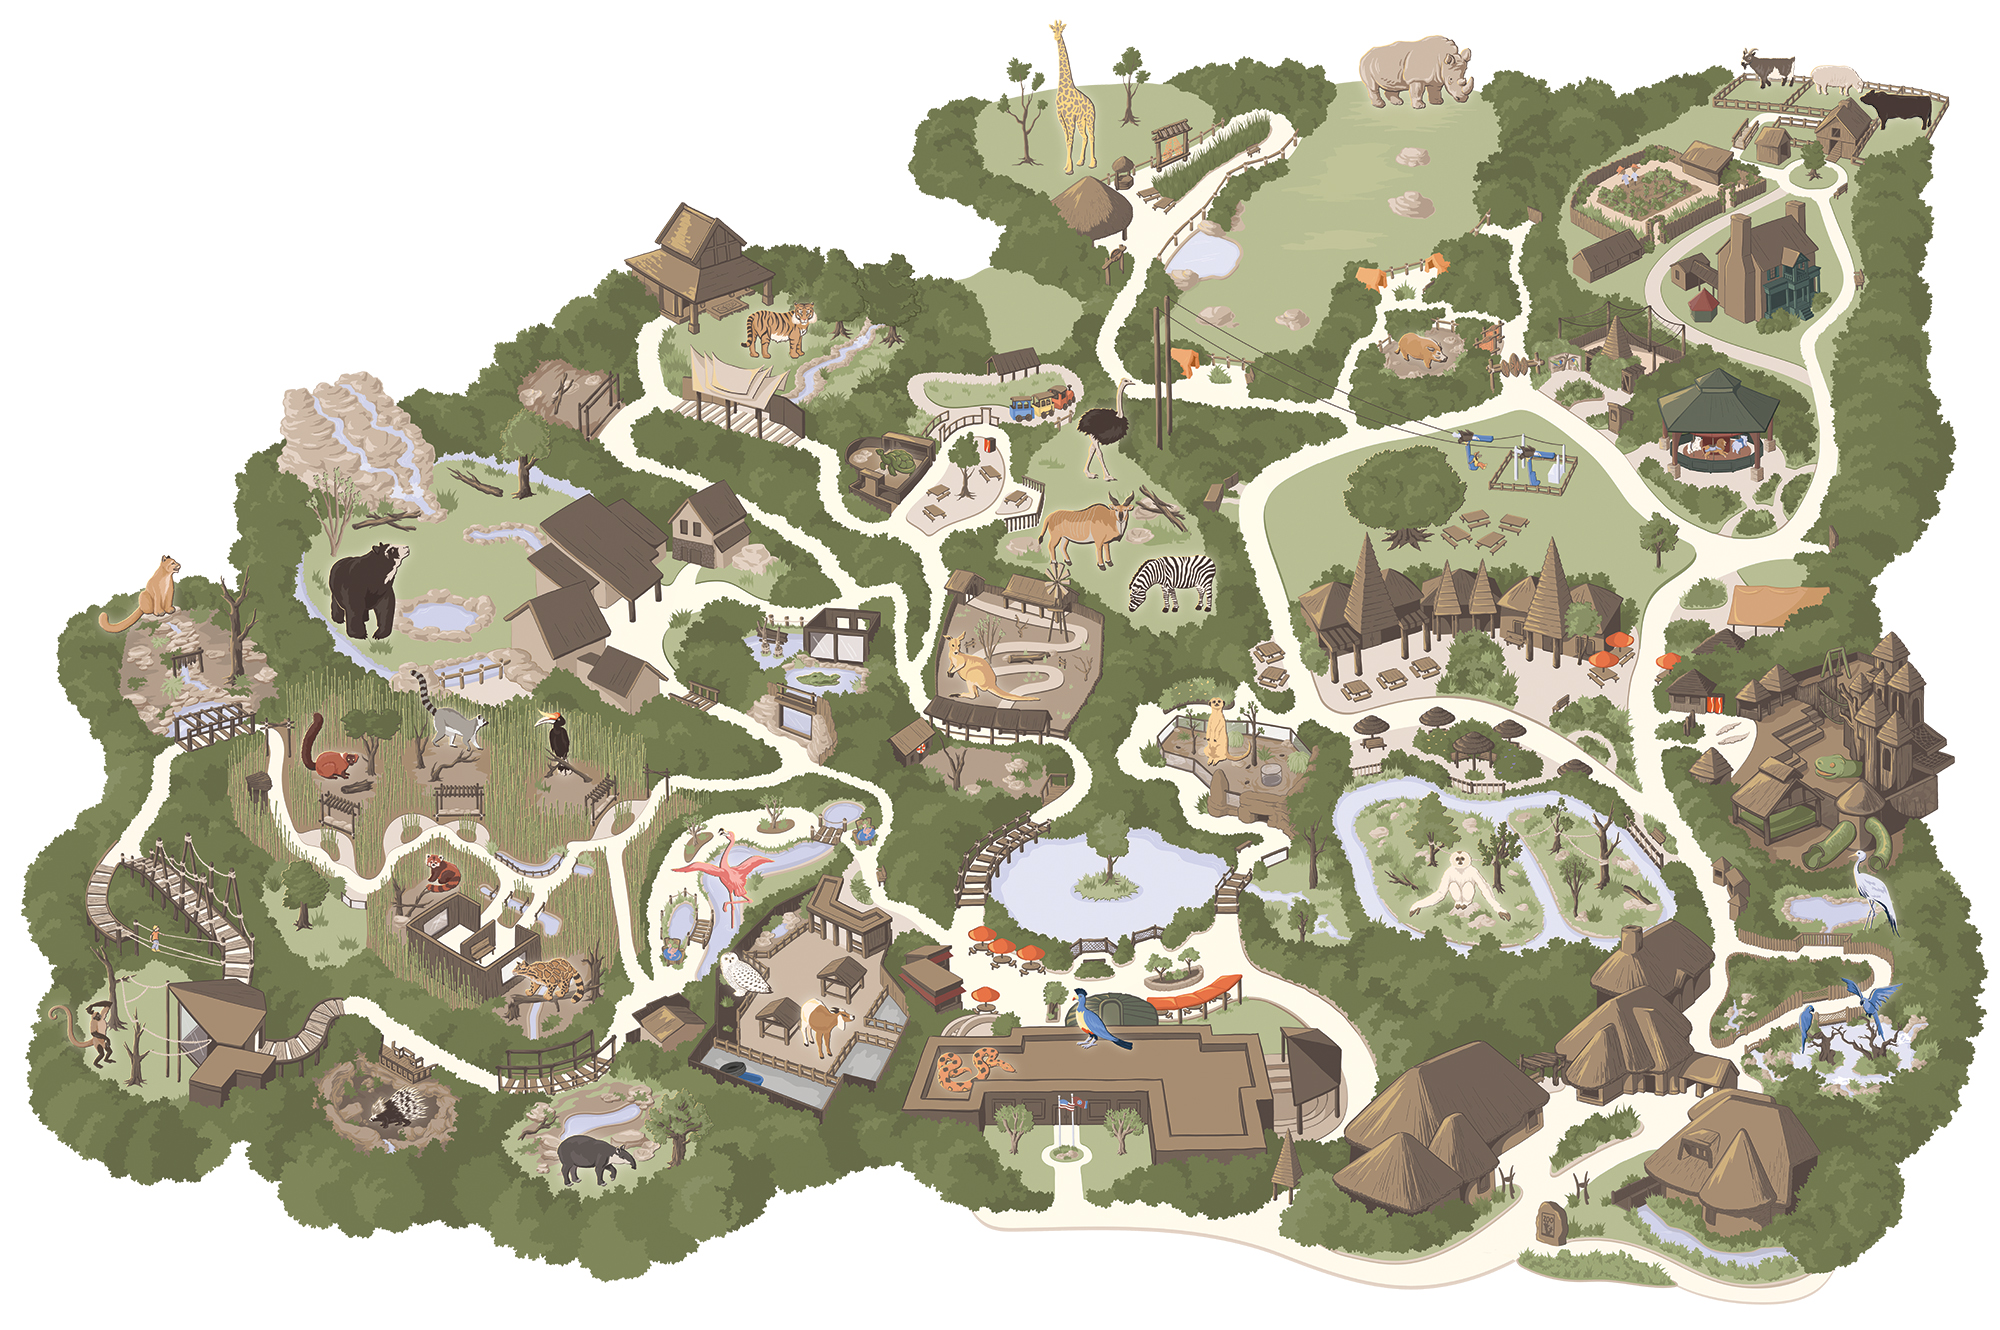 The Nashville Zoo map illustration without the labels (pictured with labels below...)